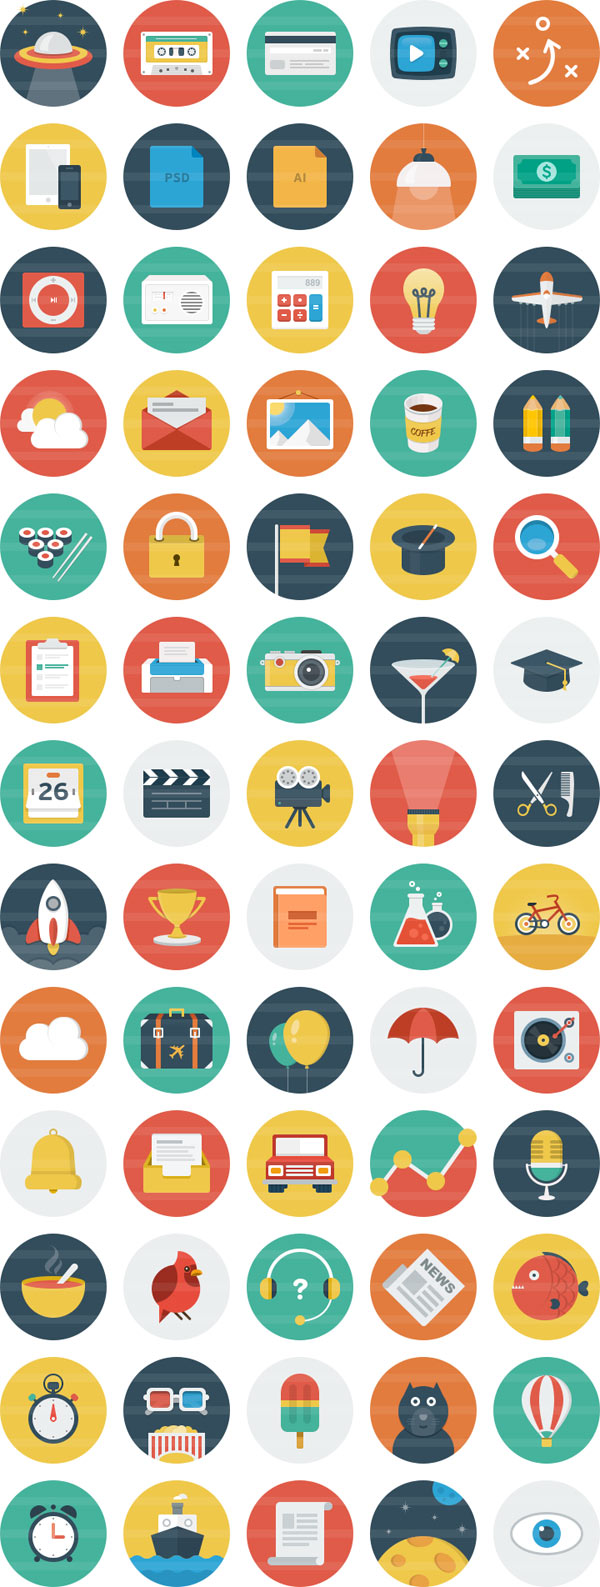 Ballicons – an Original Flat Icon Set for Download